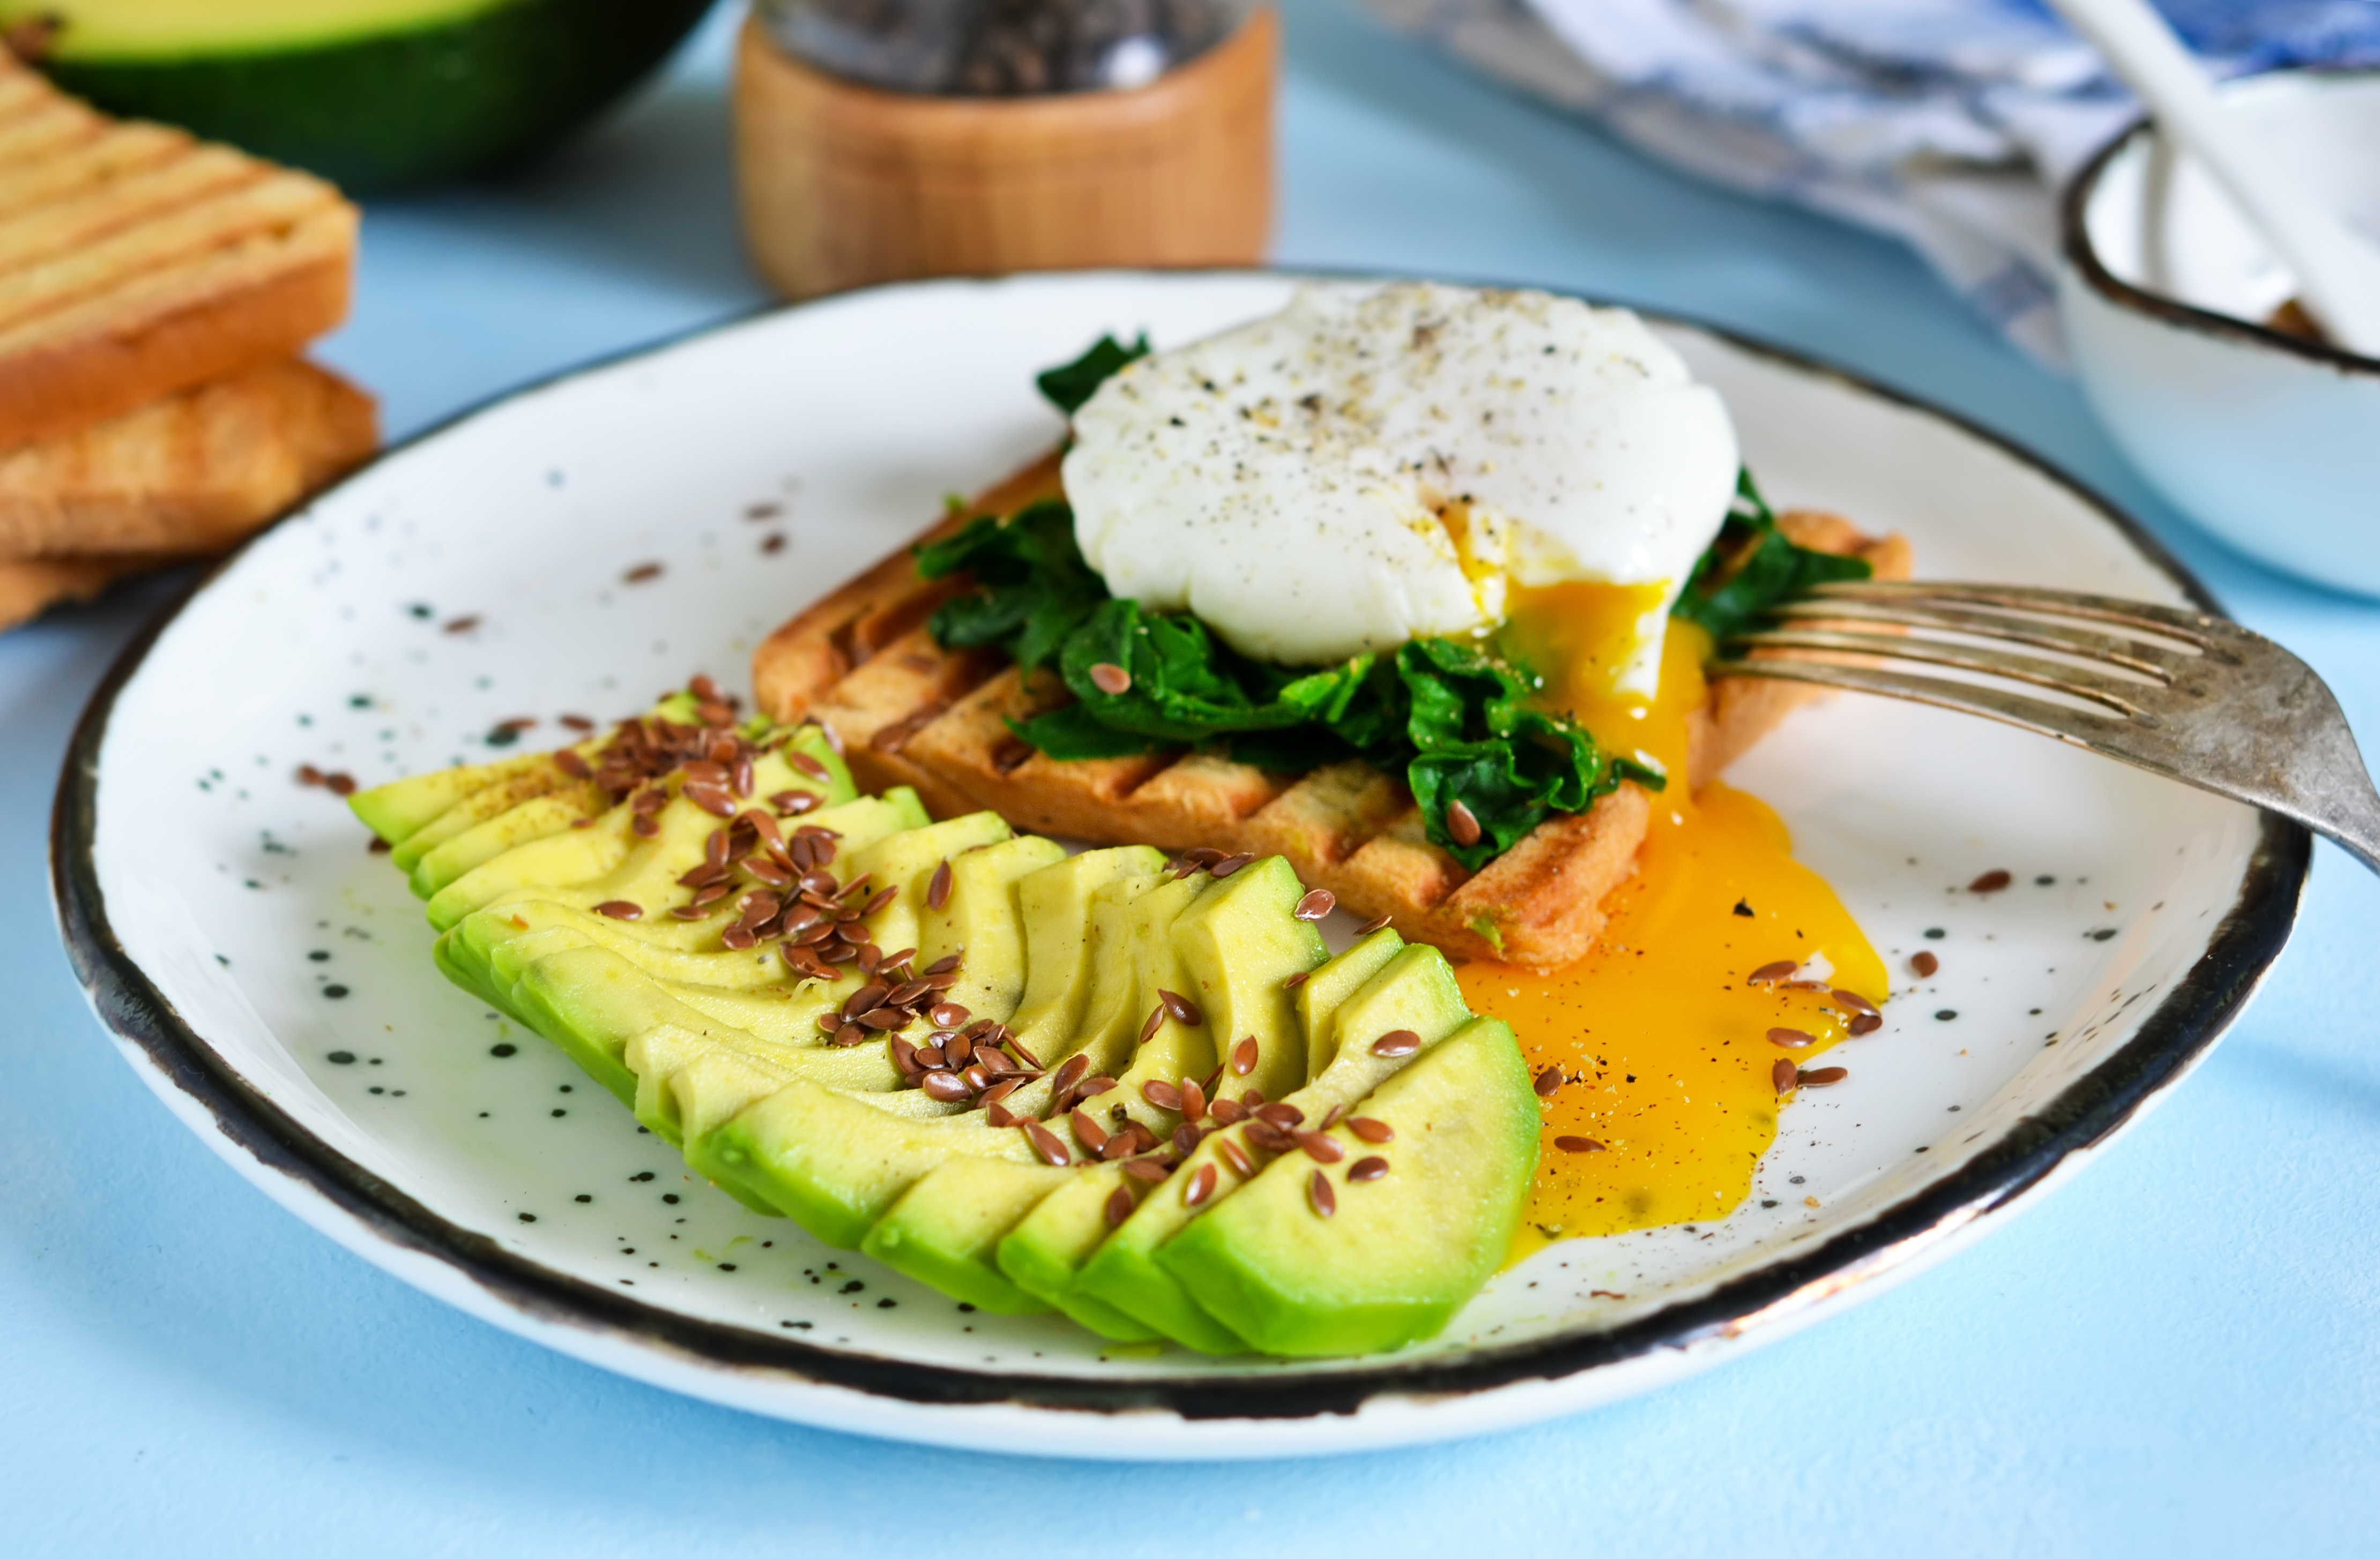 Quick breakfast - poached egg with toast, spinach and avocado.